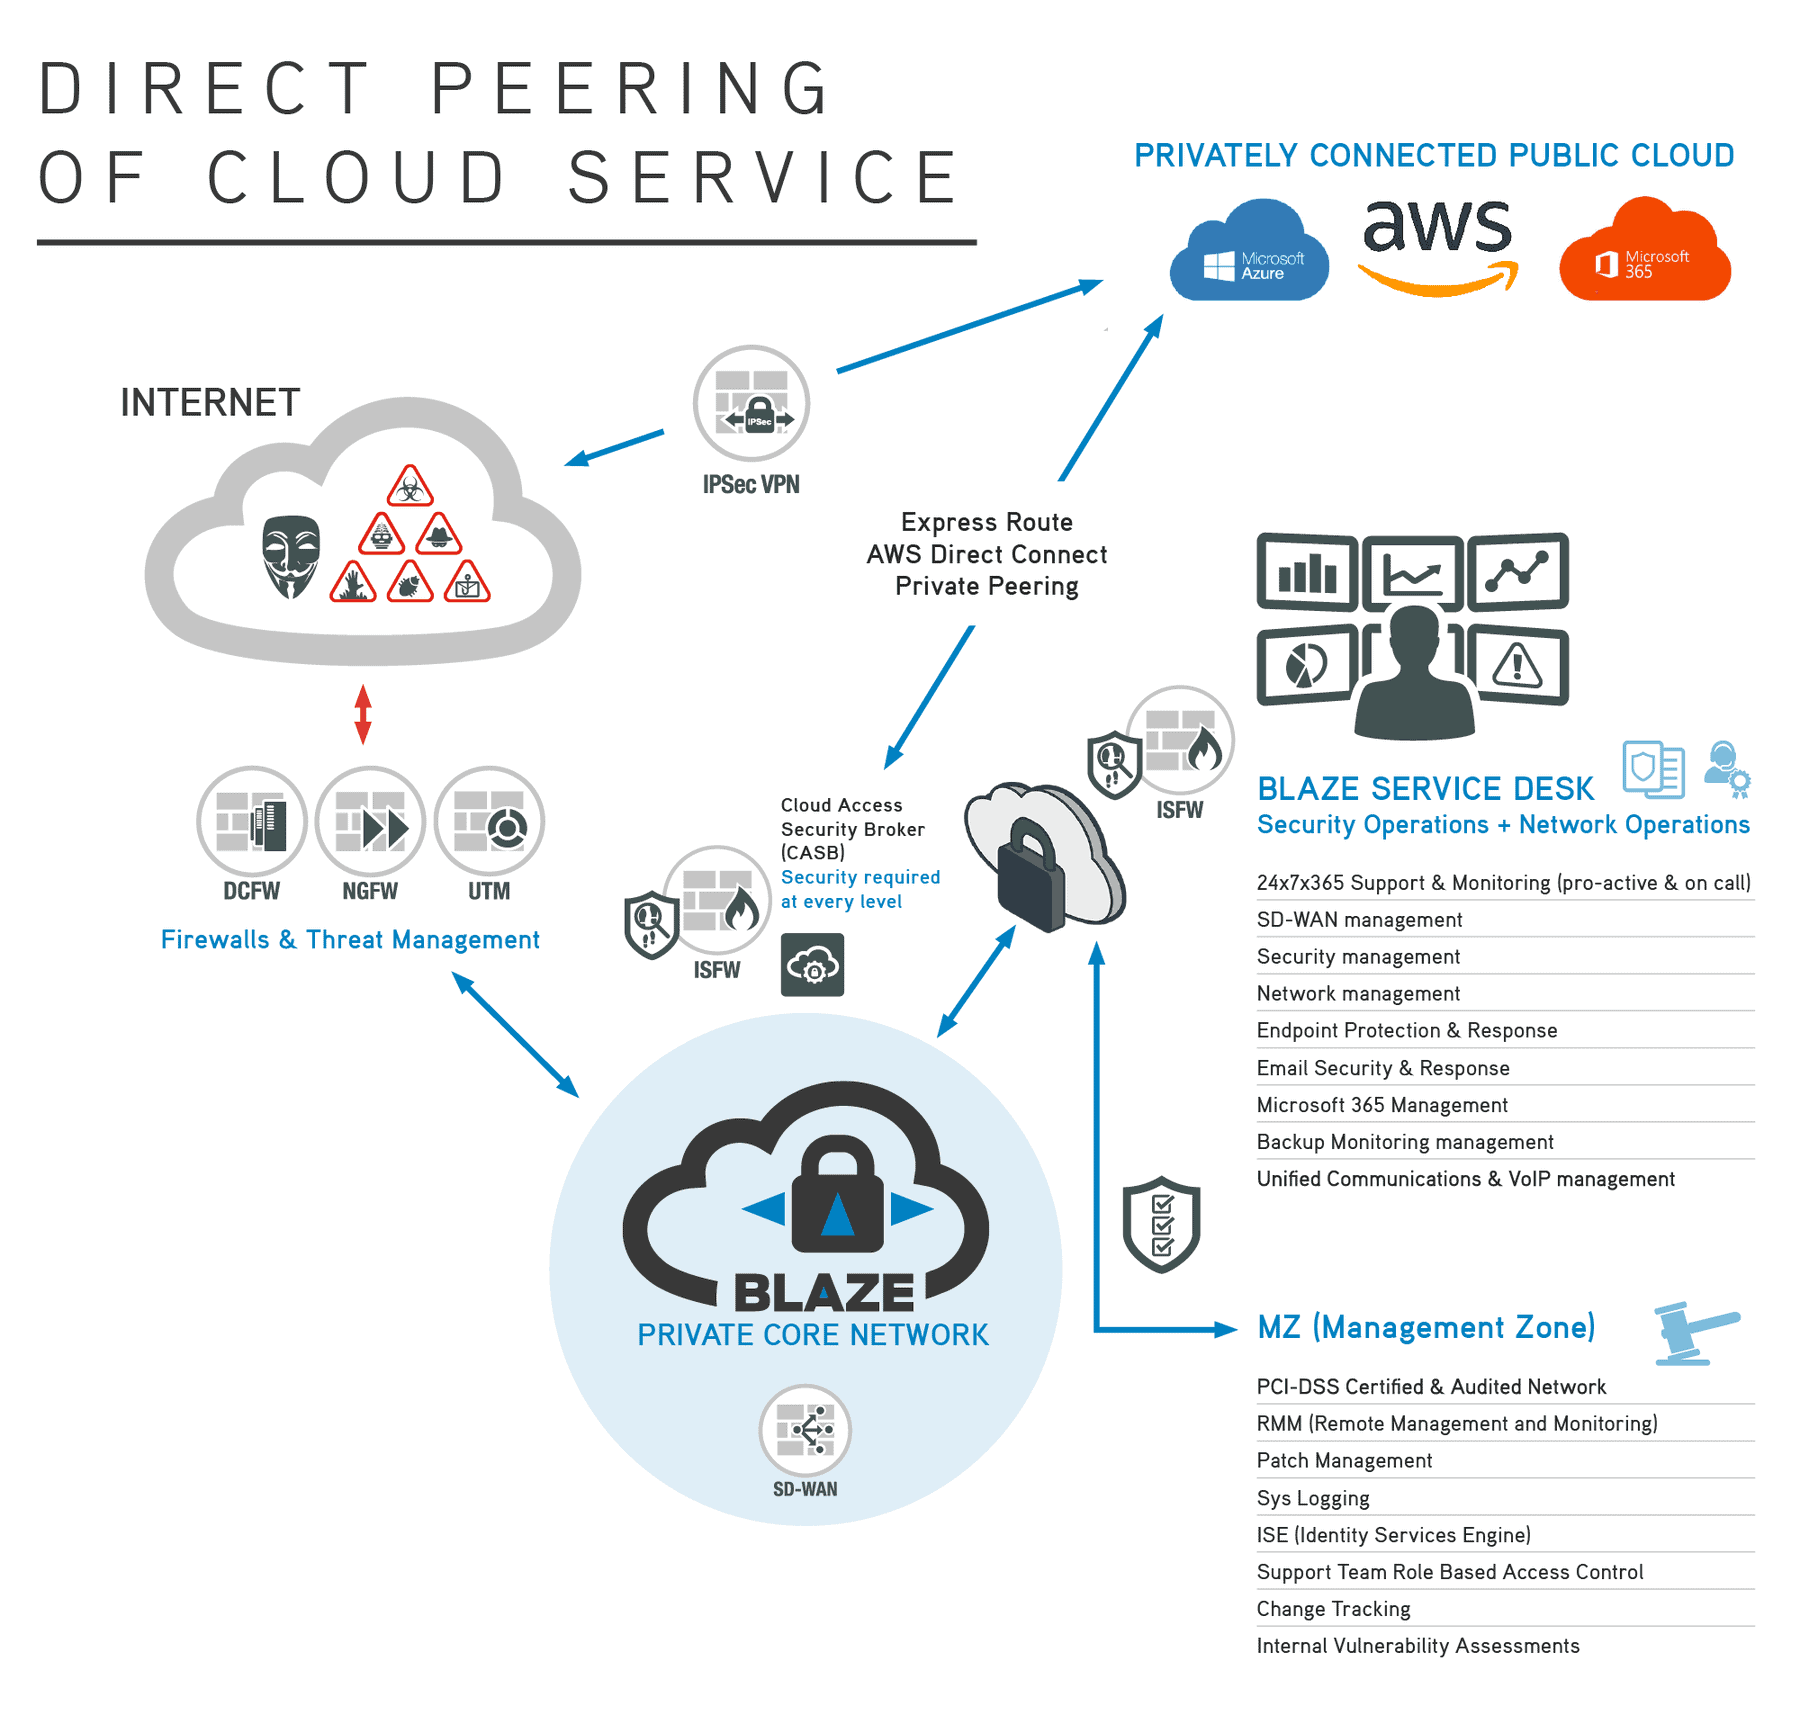 Blaze's secure method of Direct Peering for Cloud Services